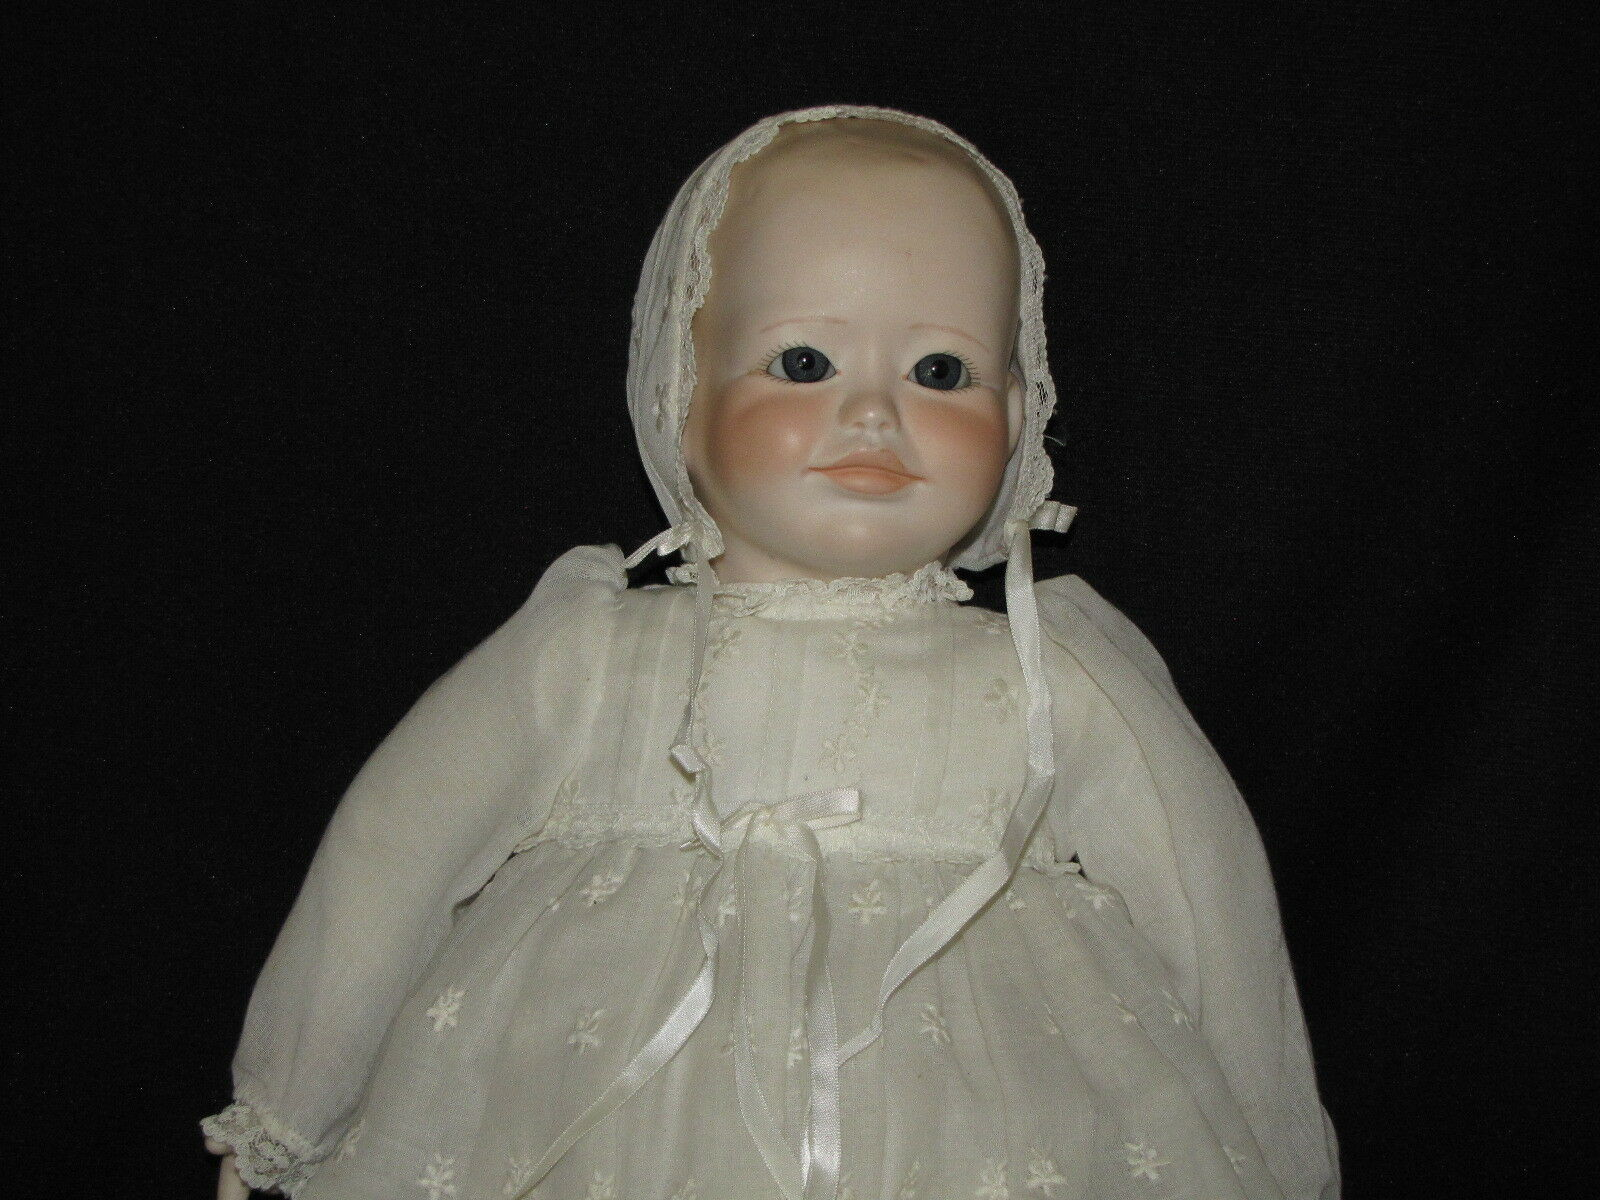 Porcelain Swivel Head Doll with 2 Face Options Long Christening Gown